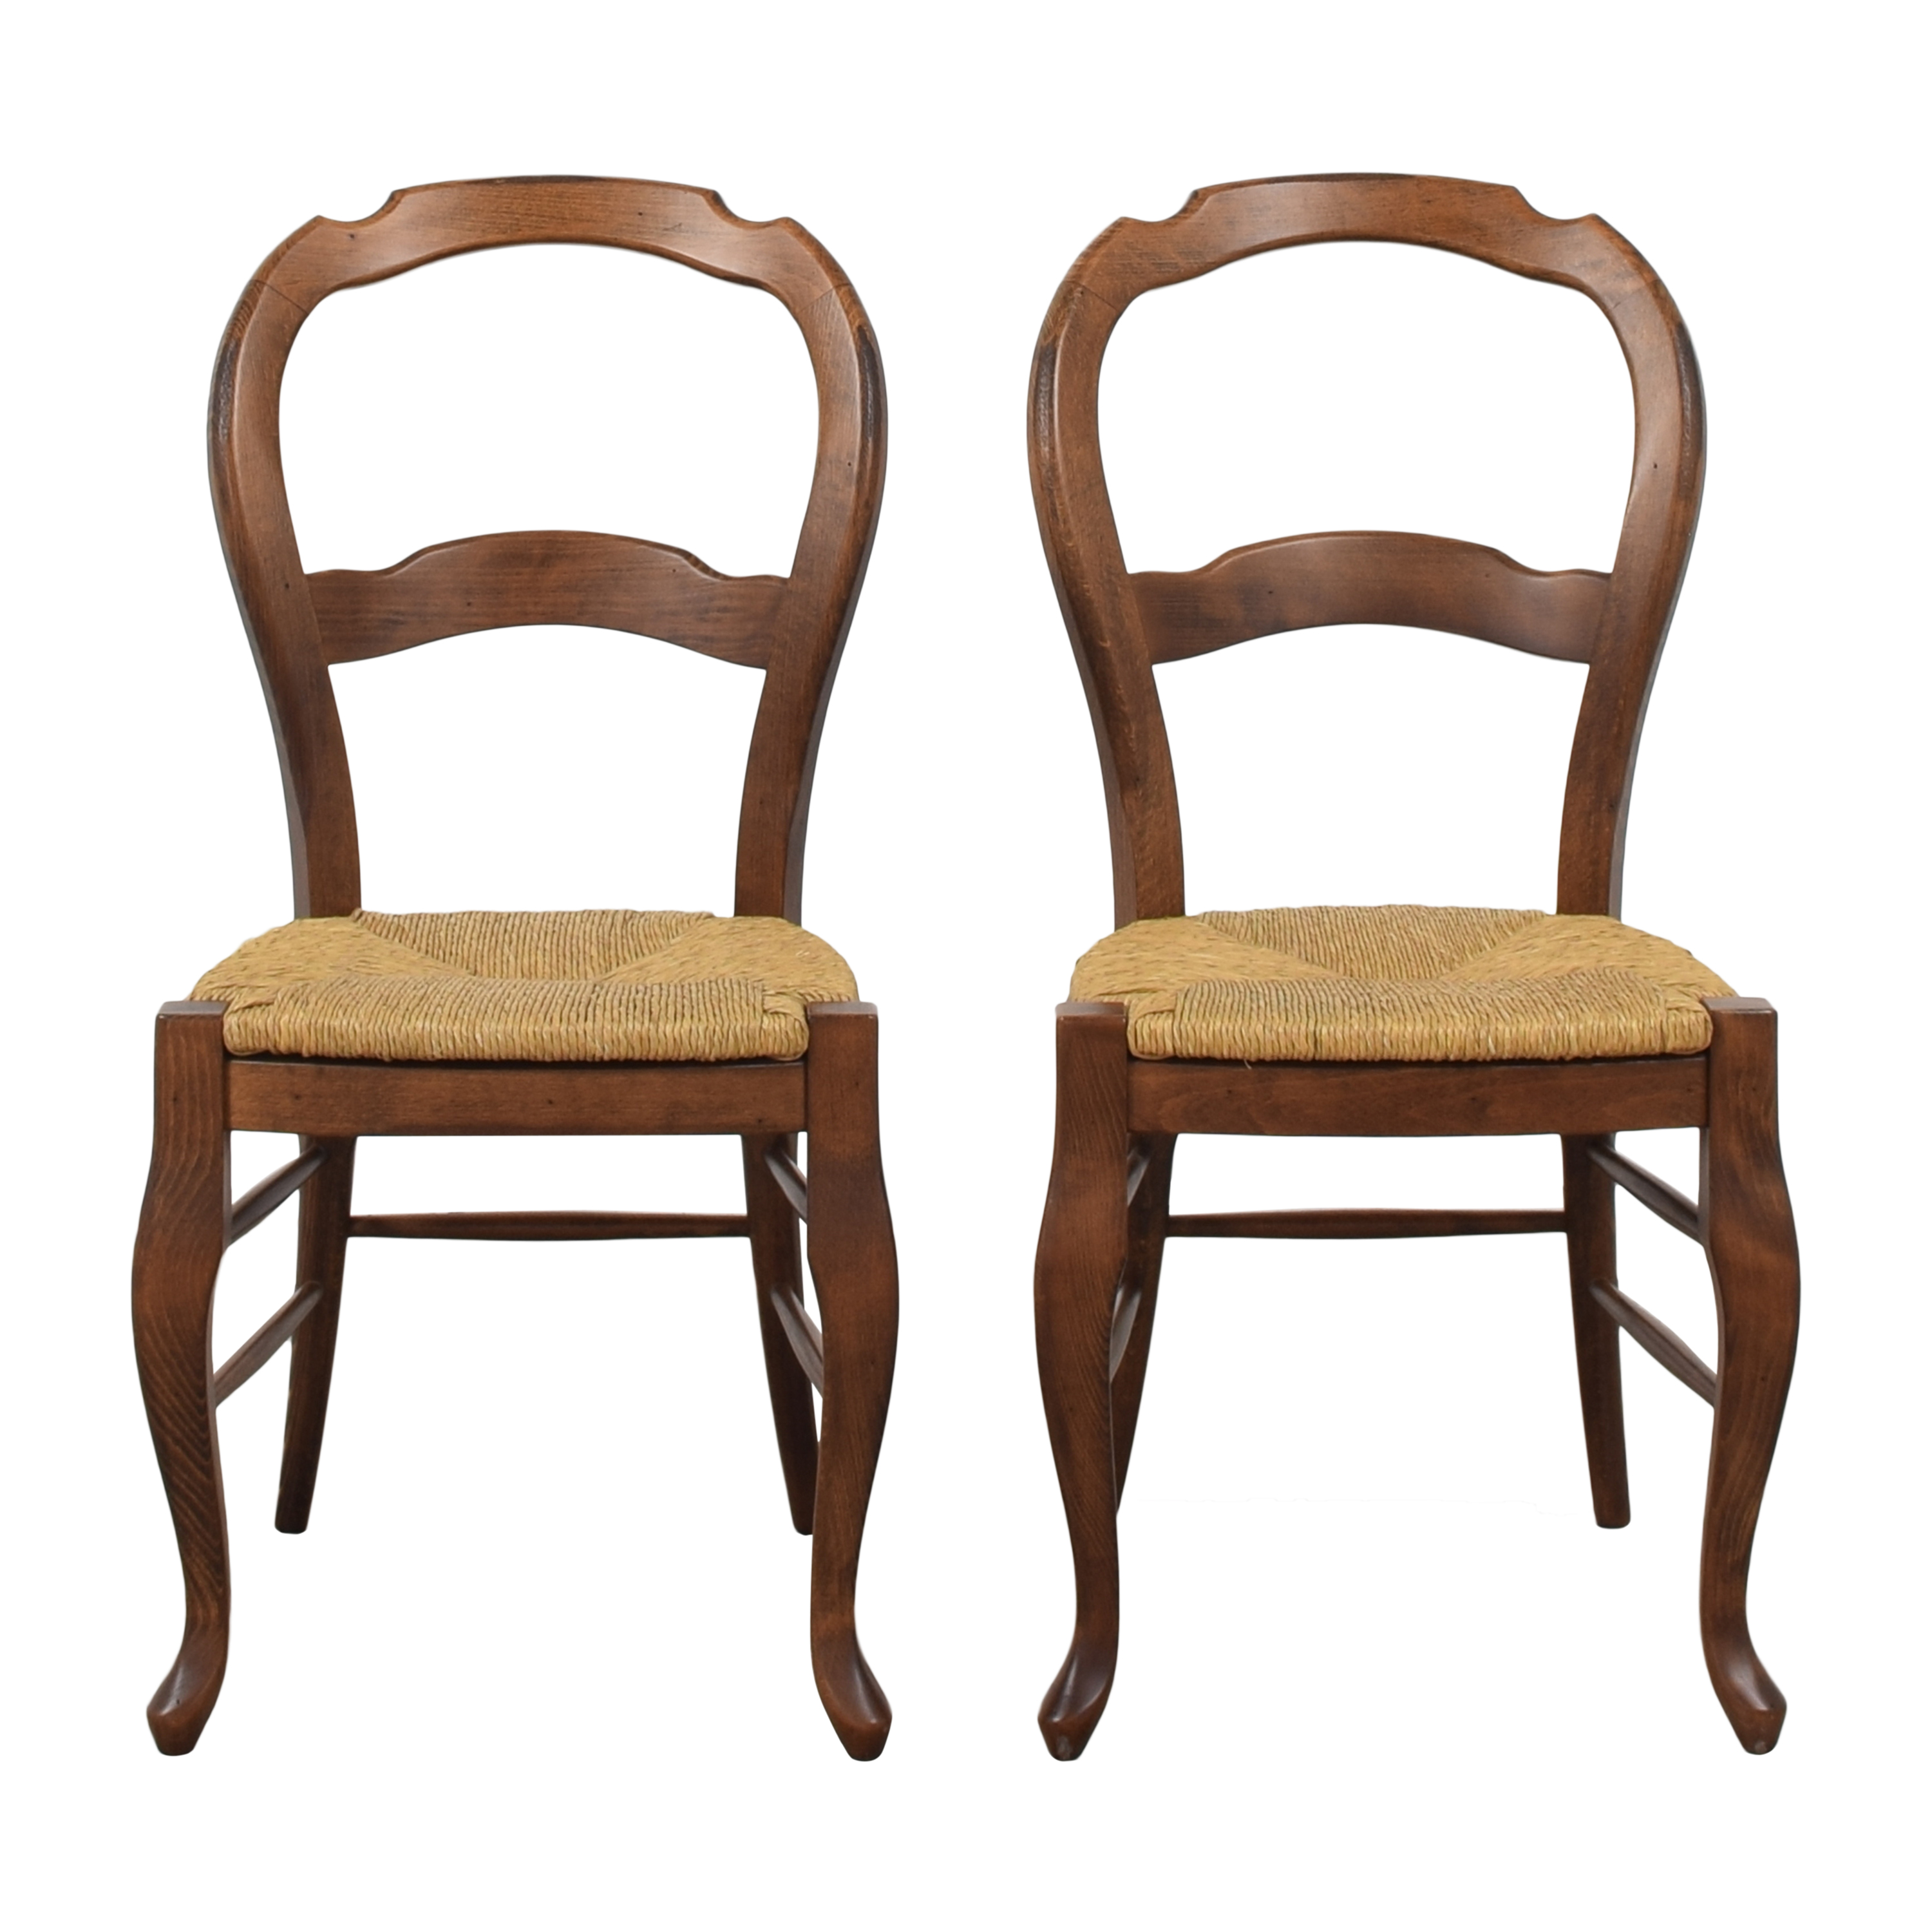 Pottery Barn Pottery Barn French Country Dining Side Chairs second hand